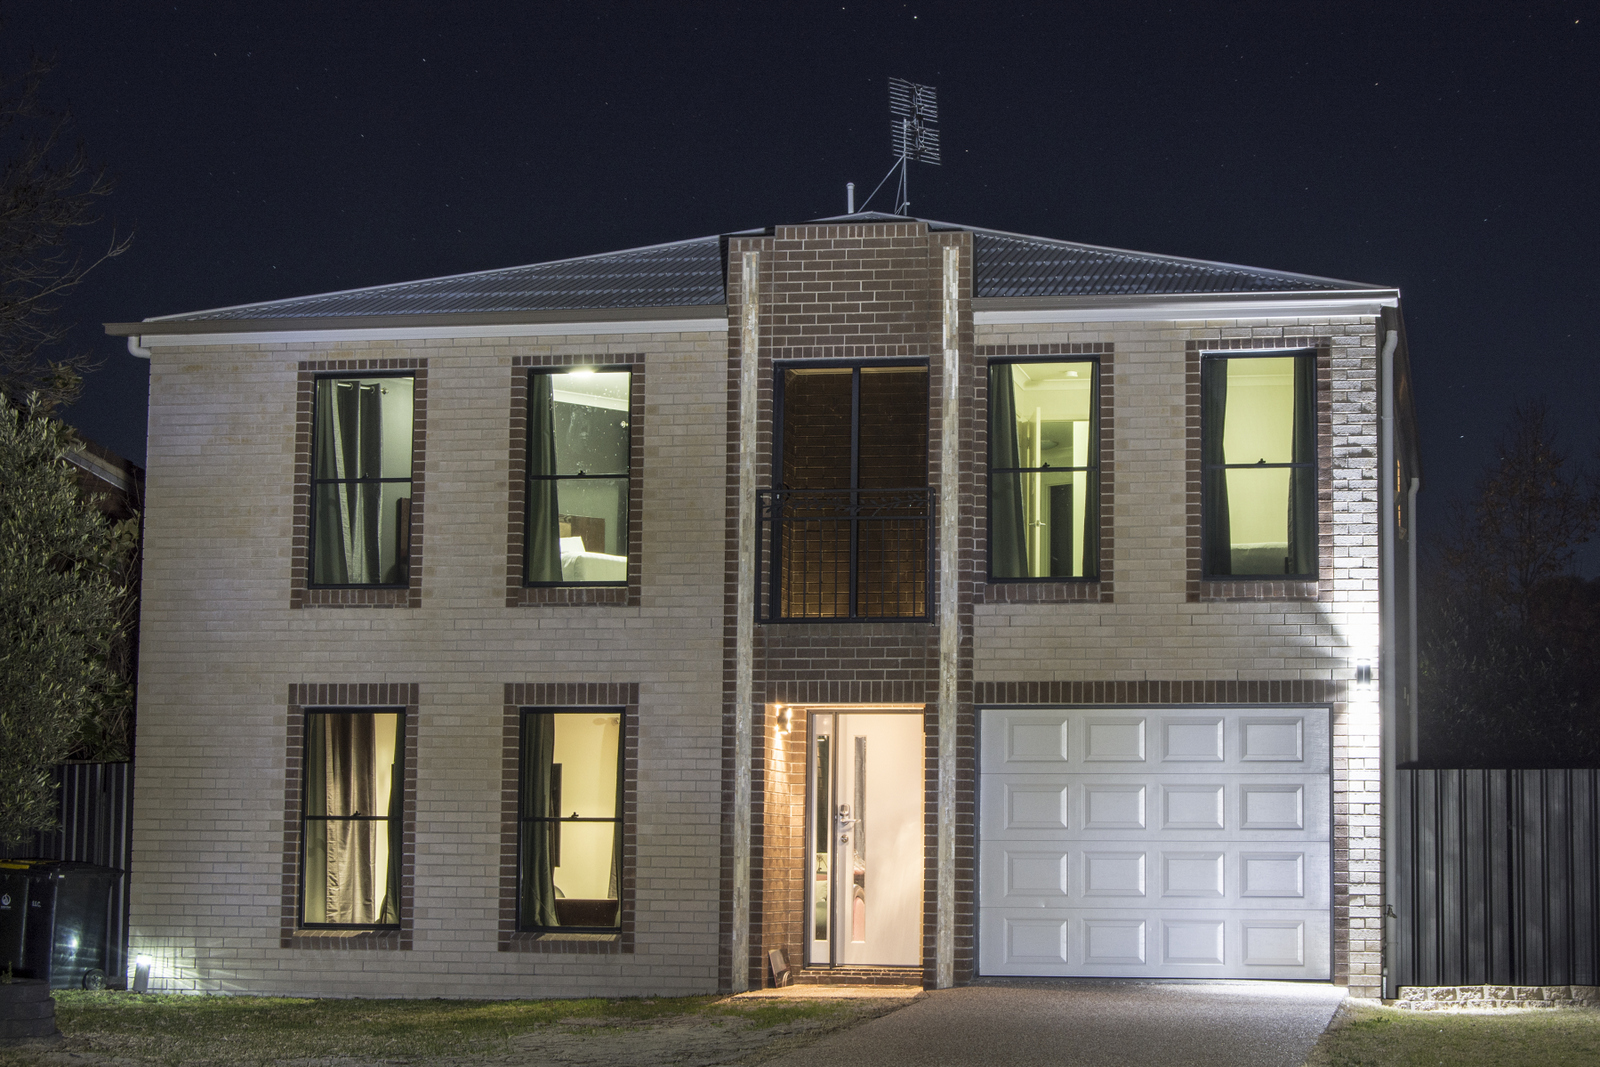 Unit 1 Charlie: 3 bedroom, 2 story, easy garage access